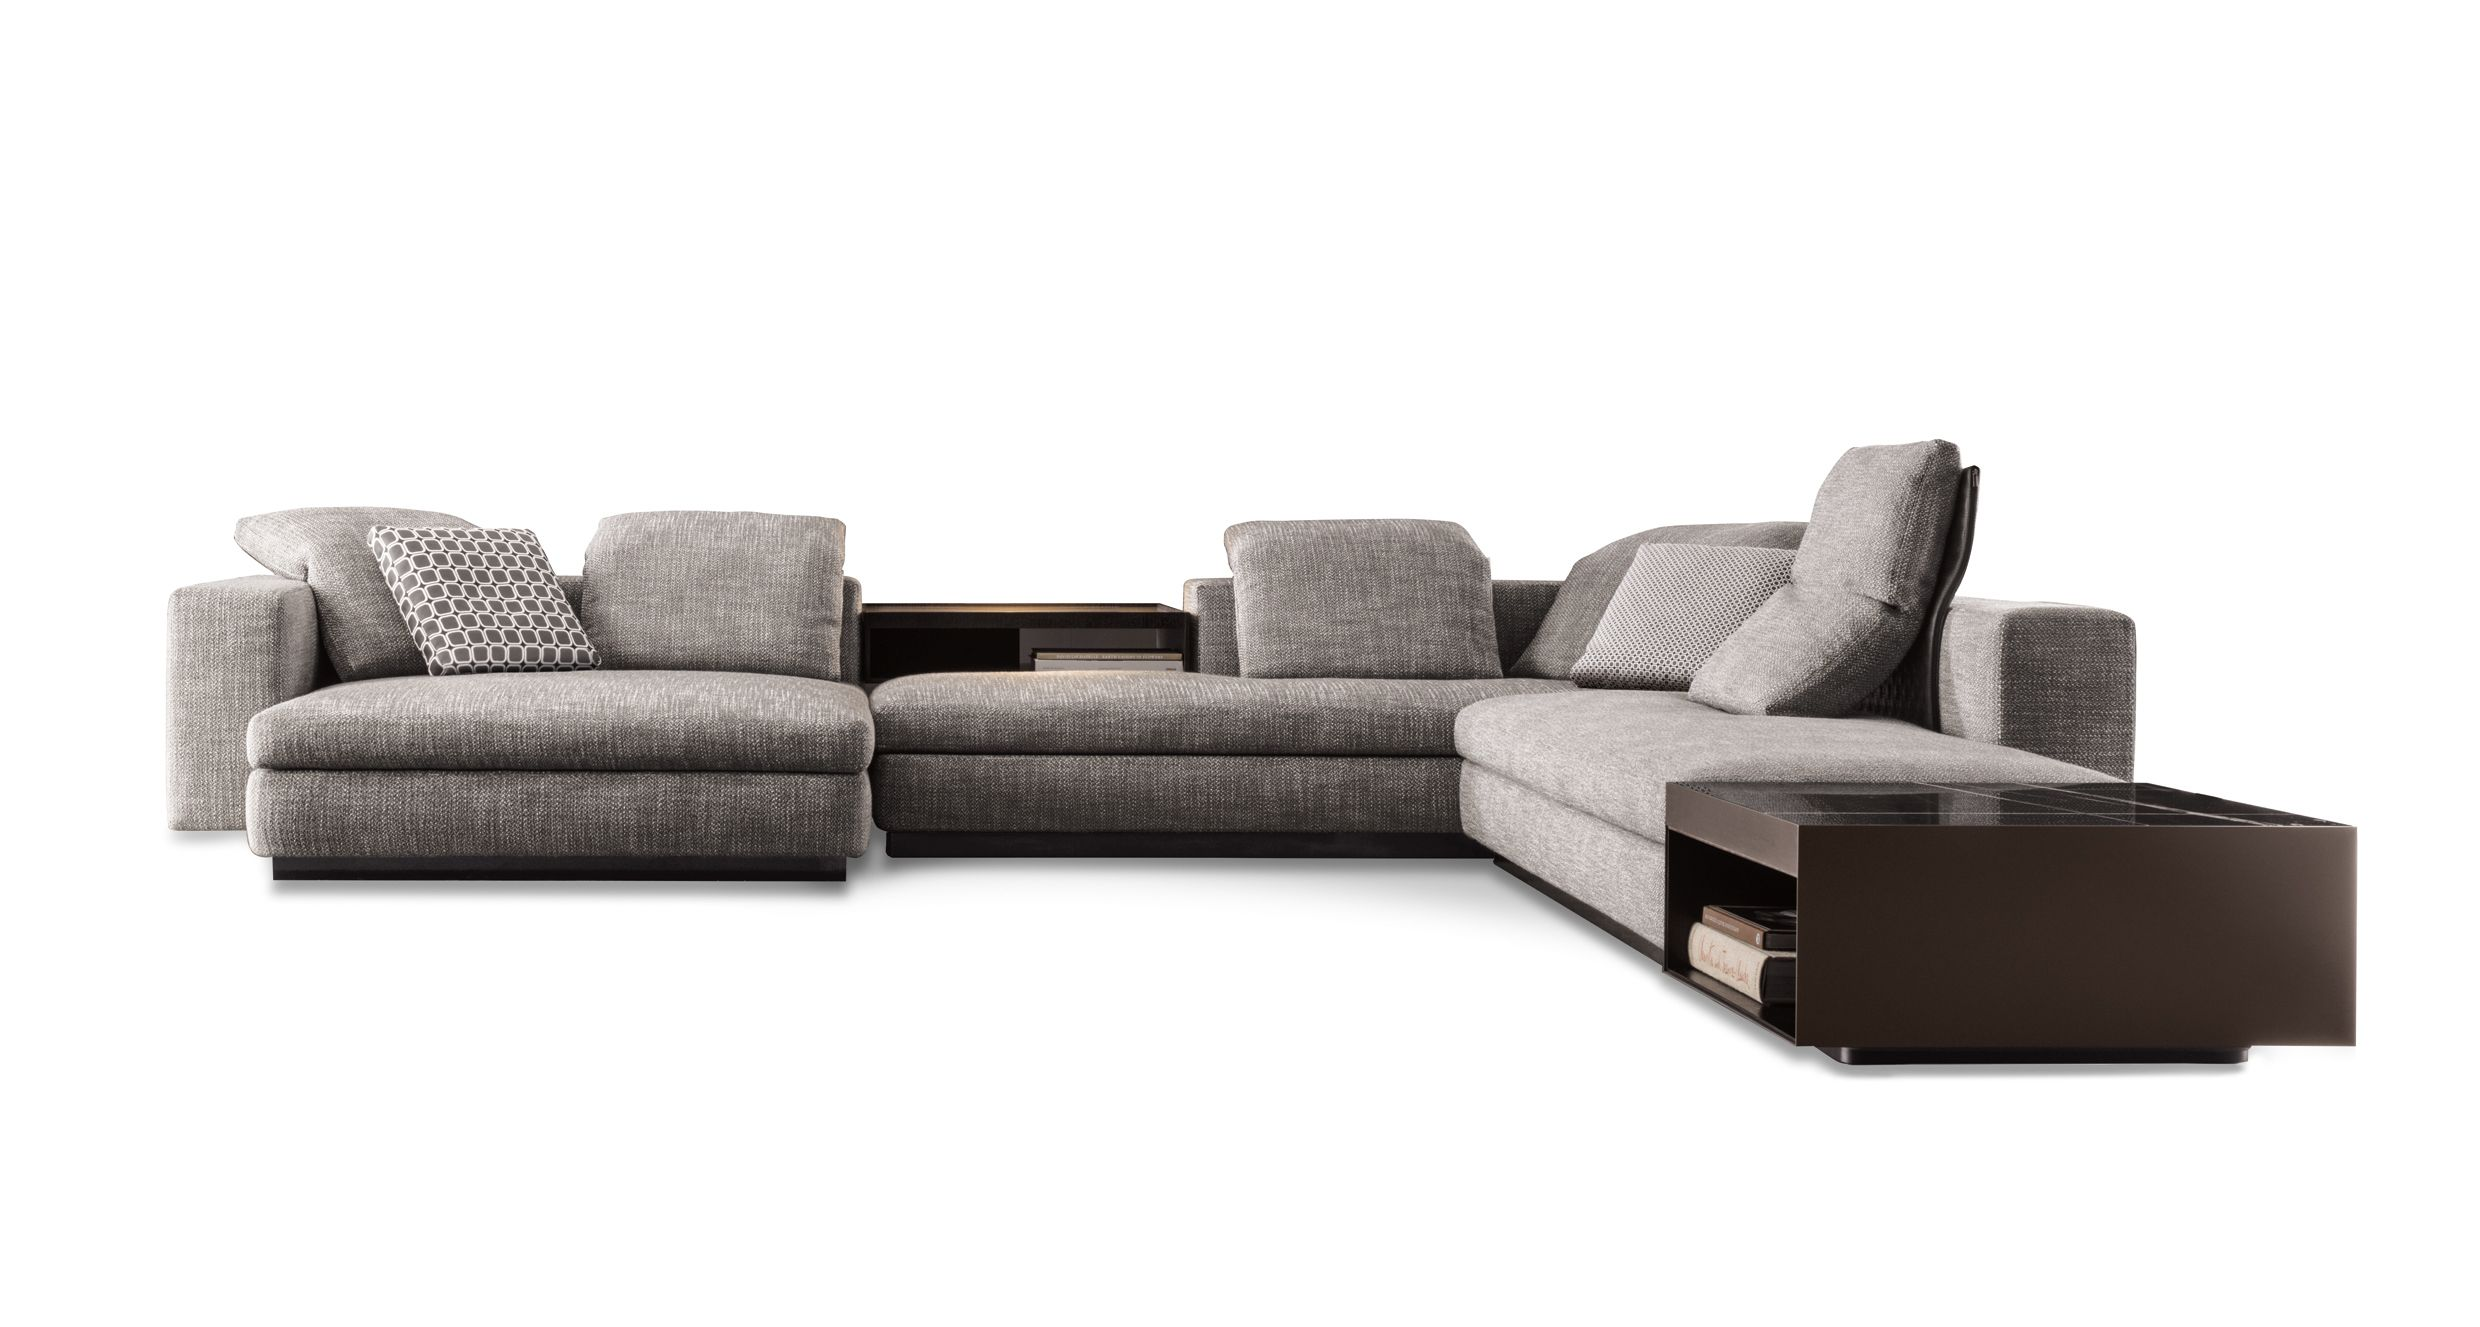 Natuzzi Long Beach 3 rendering 1 å ¶å…· 意大利natuzzi